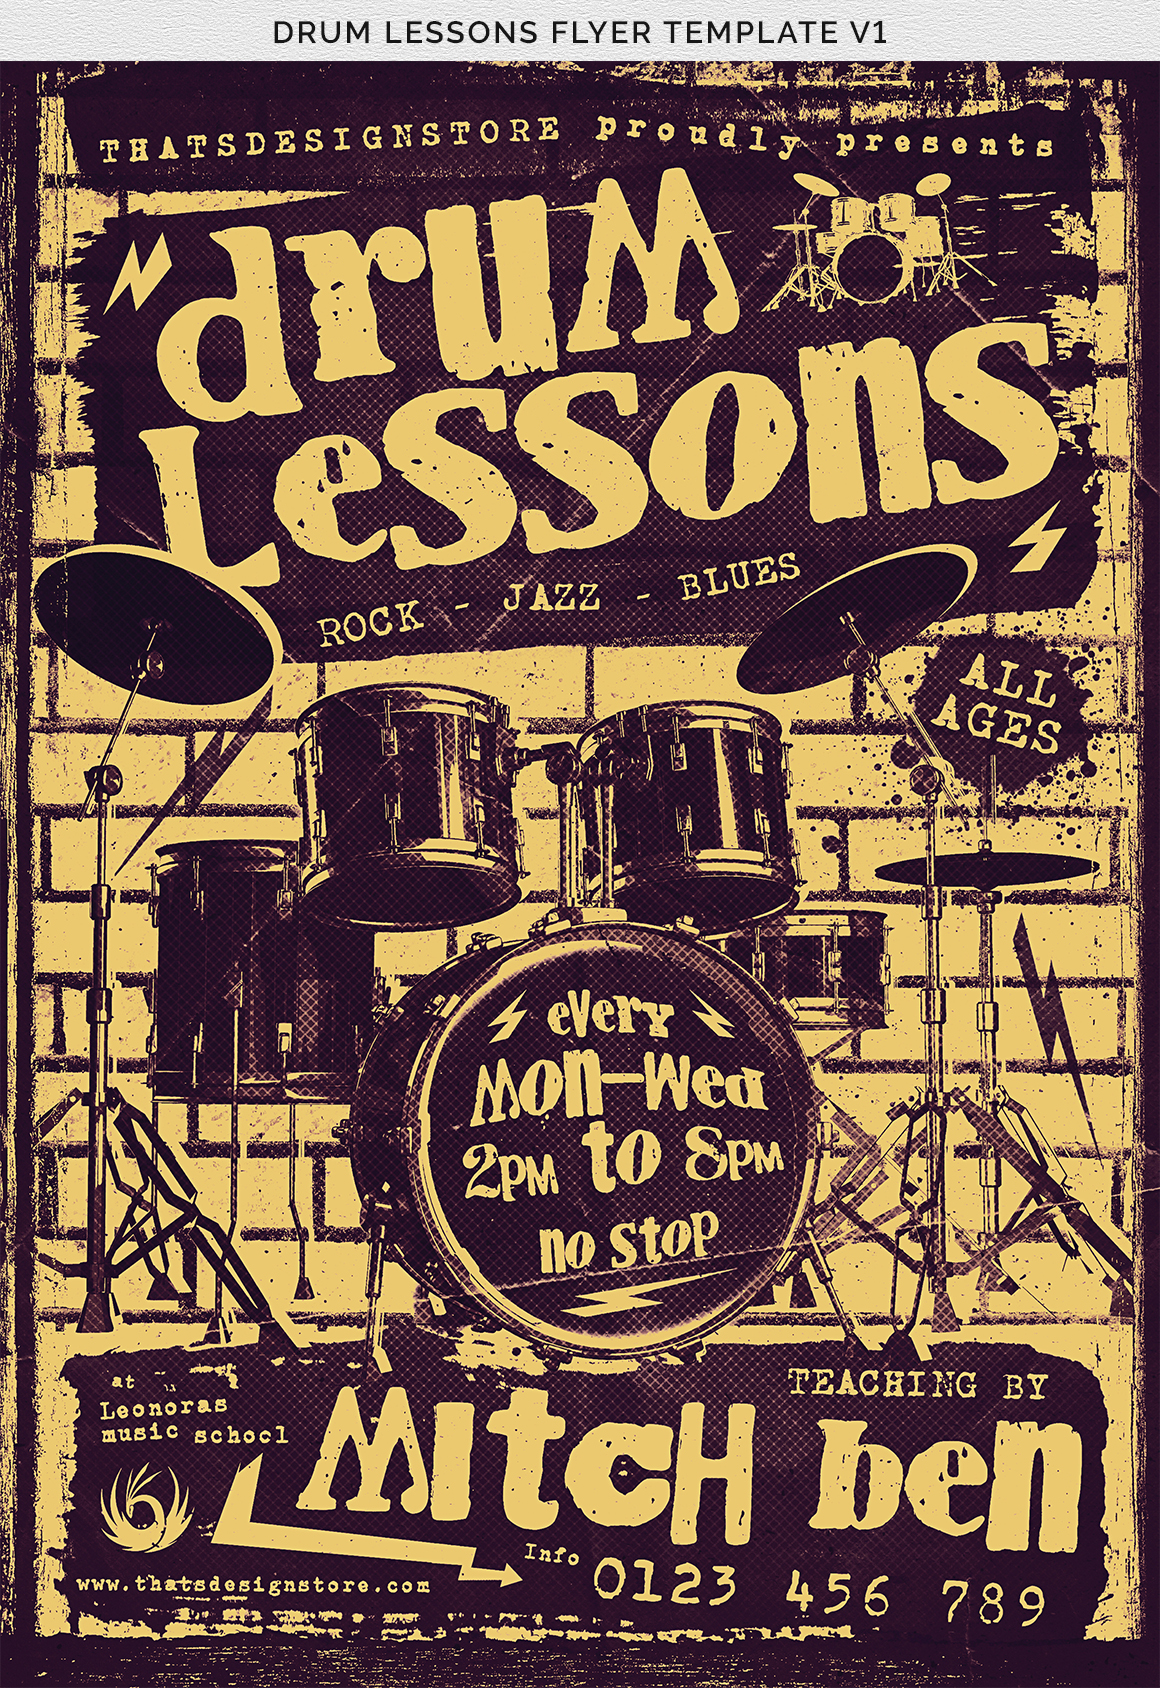 Drum Lessons Flyer Template V1 example image 9